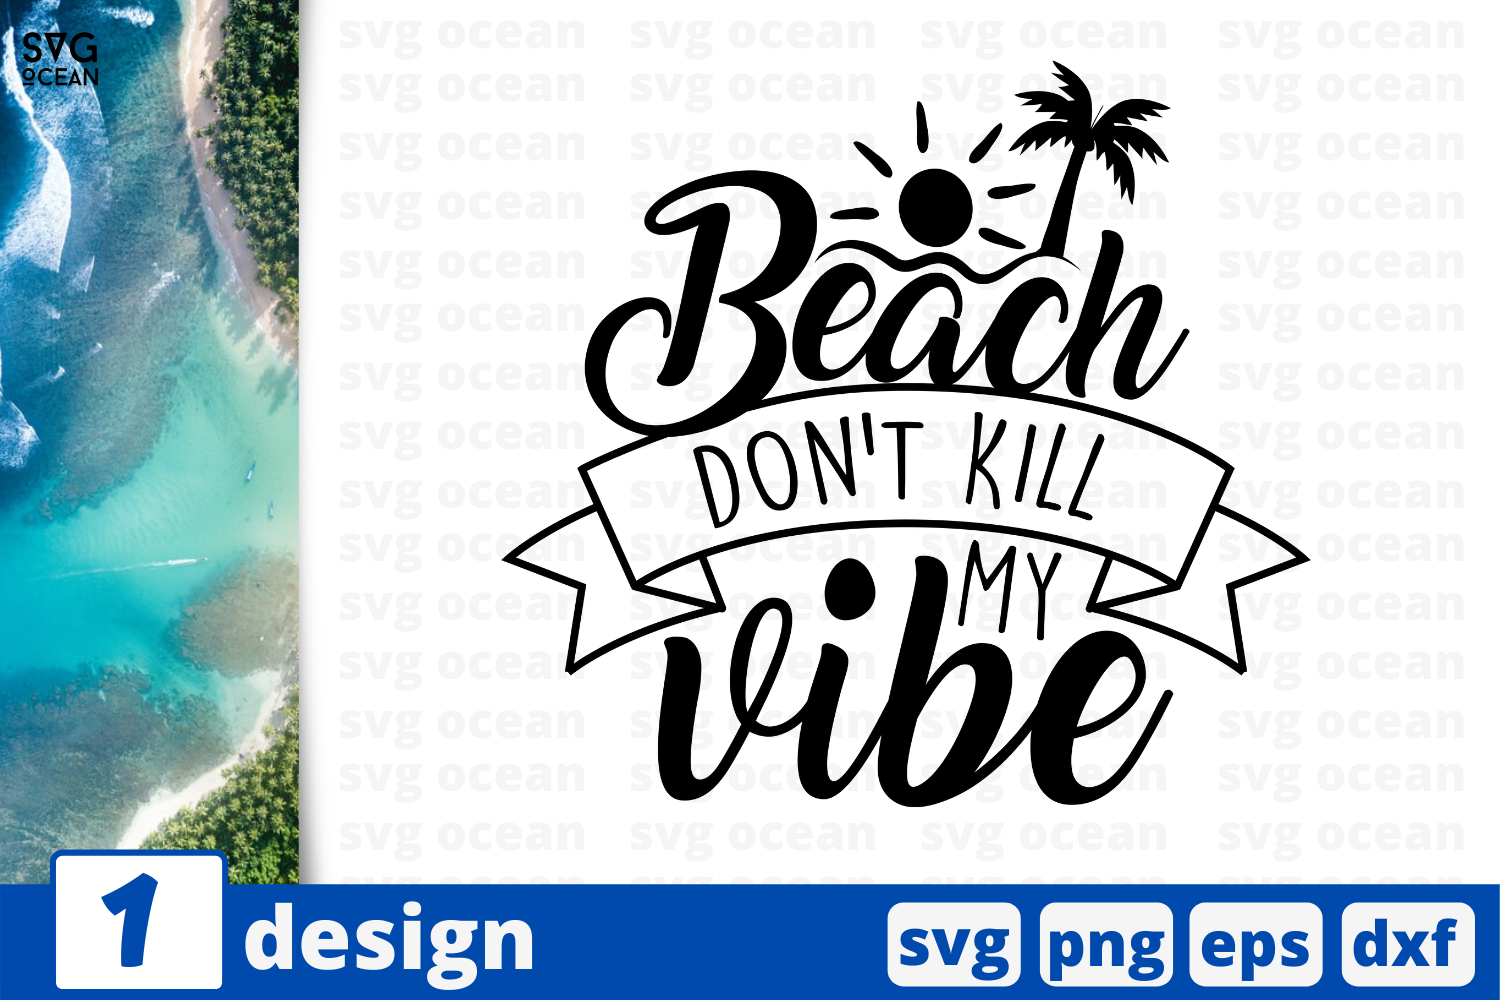 Download Free Beach Don T Kill My Vibe Graphic By Svgocean Creative Fabrica for Cricut Explore, Silhouette and other cutting machines.